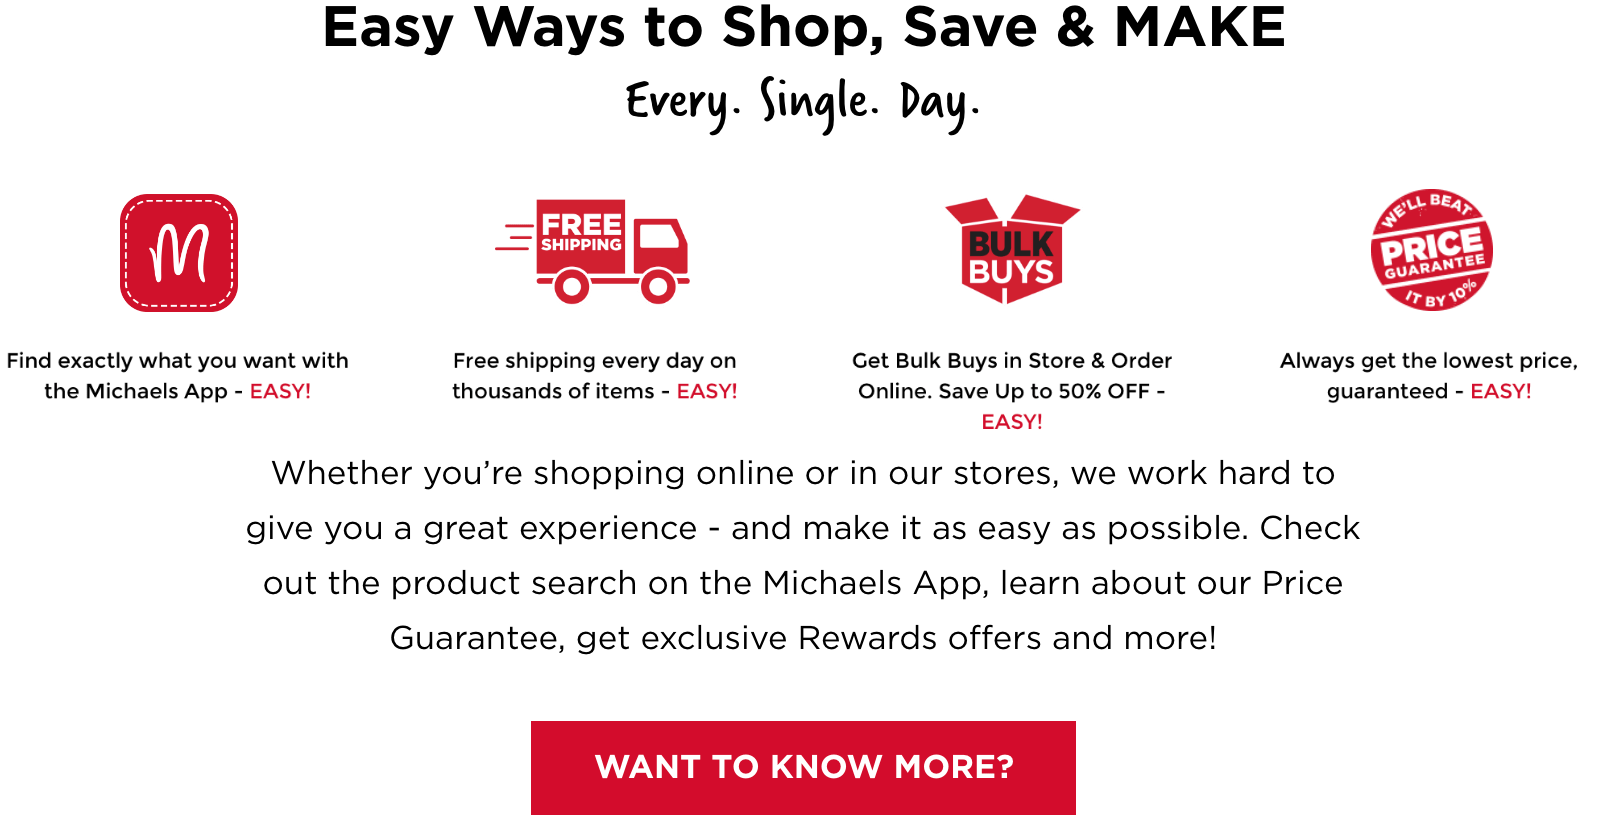 Easy Ways to Shop, Save & MAKE. Want to know more?